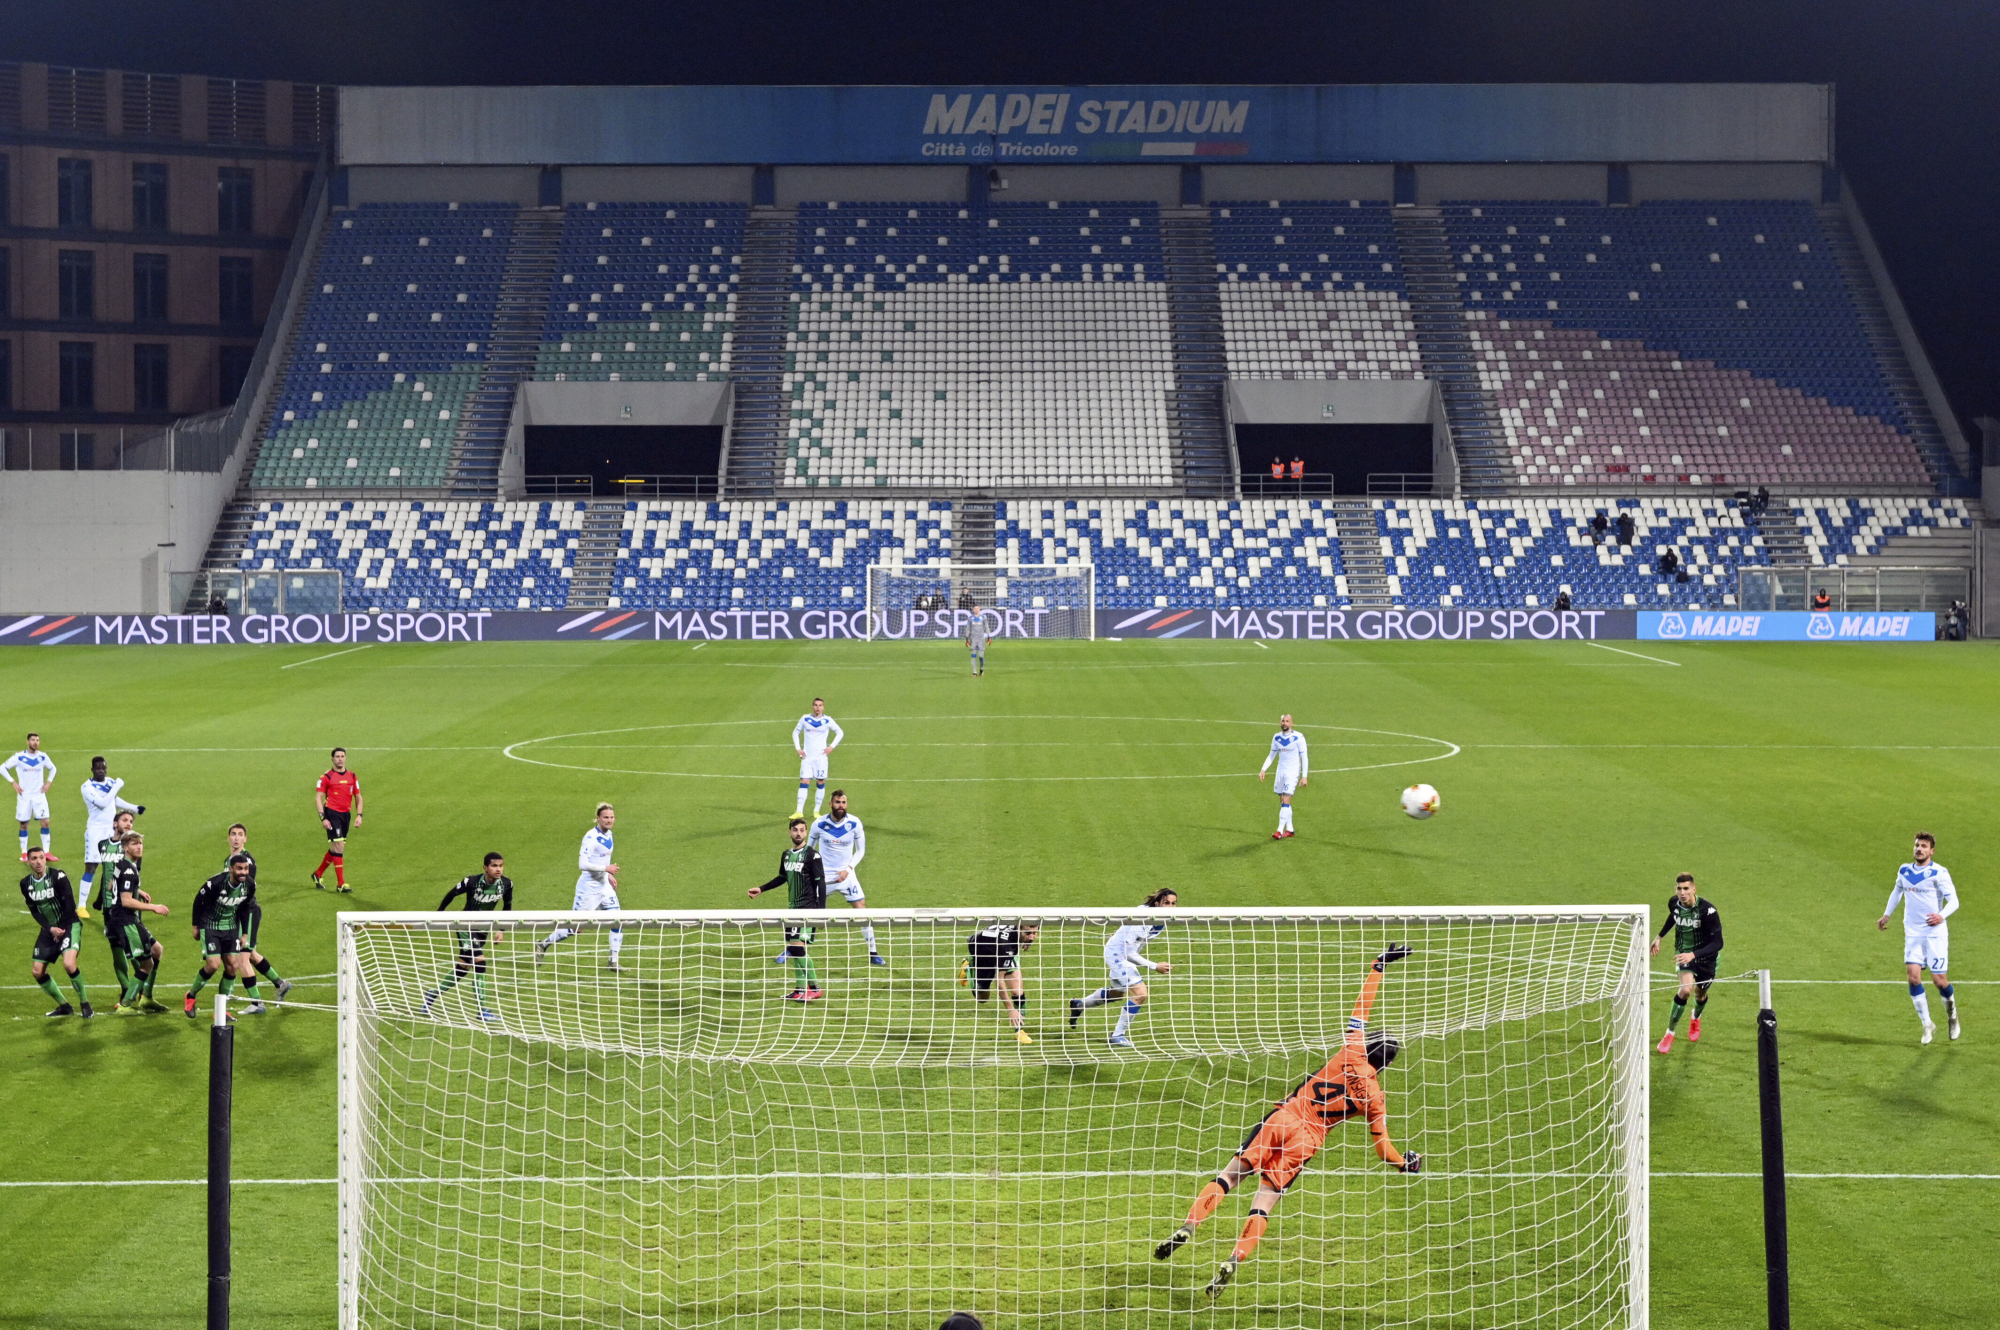 Serie A rivals Sassuolo and Brescia play behind closed doors on Monday at Mapei Stadium in Reggio Emilia, Italy. | AP